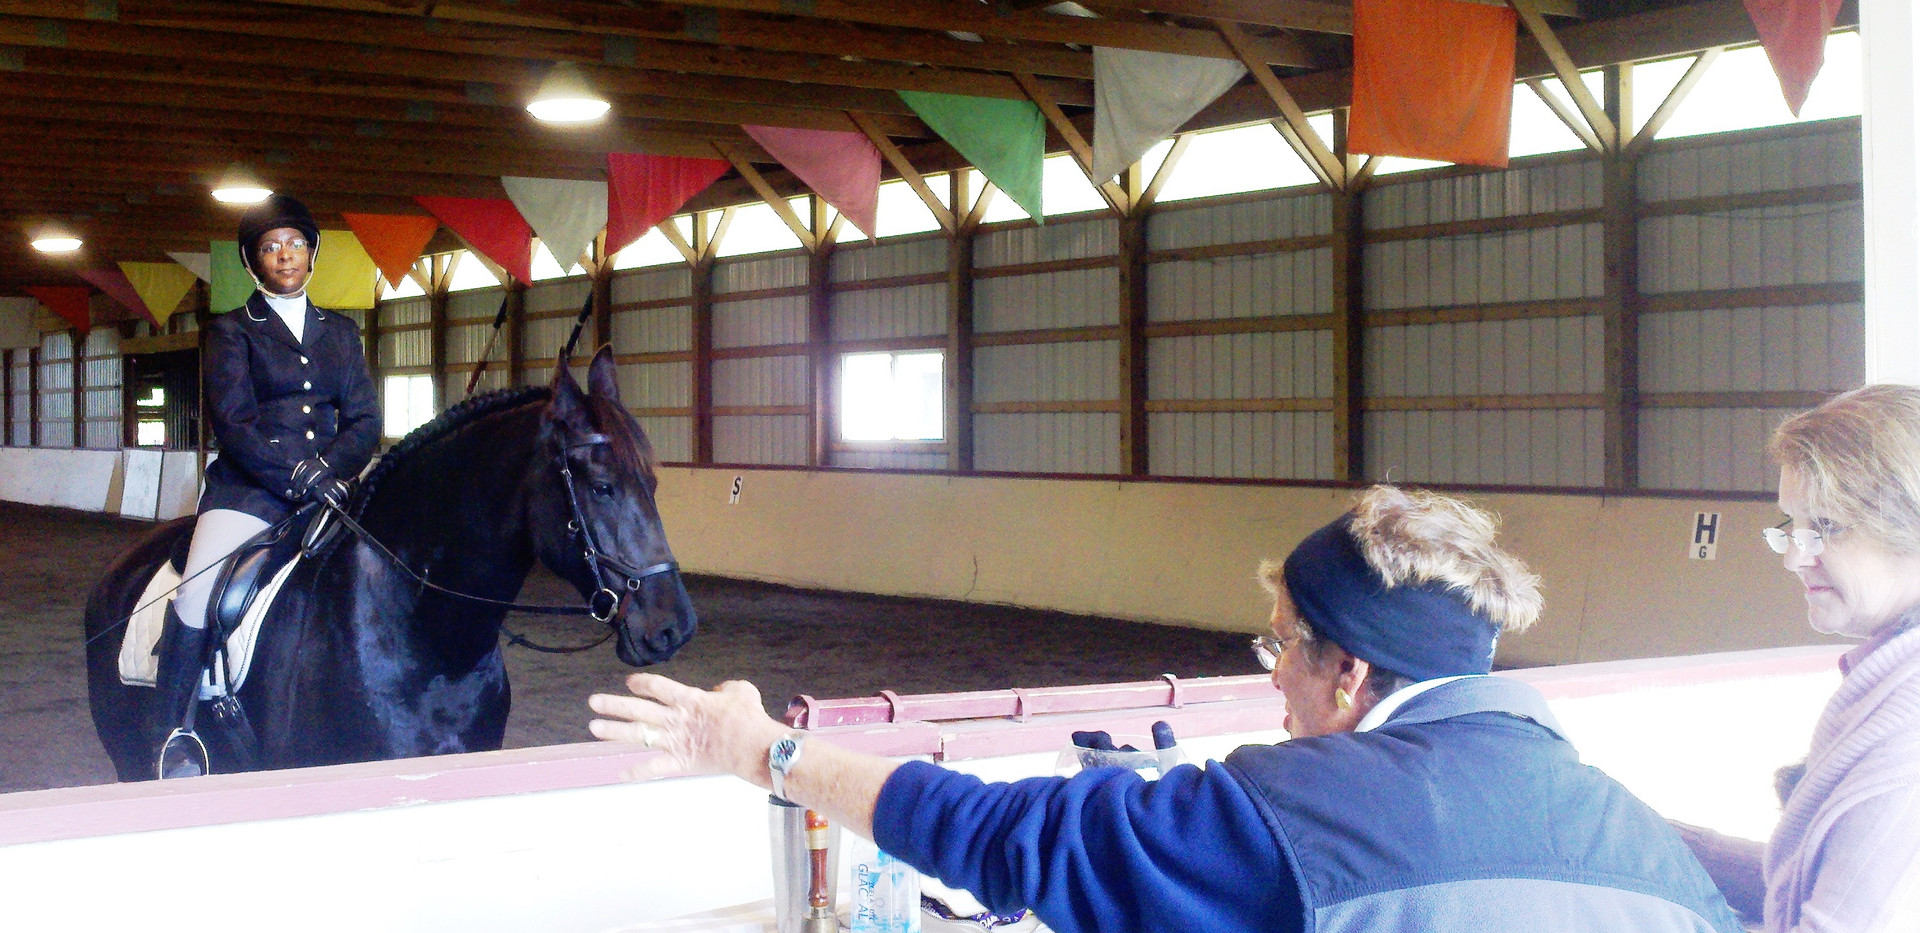 Schooling PVDA Show rider with judge.jpg